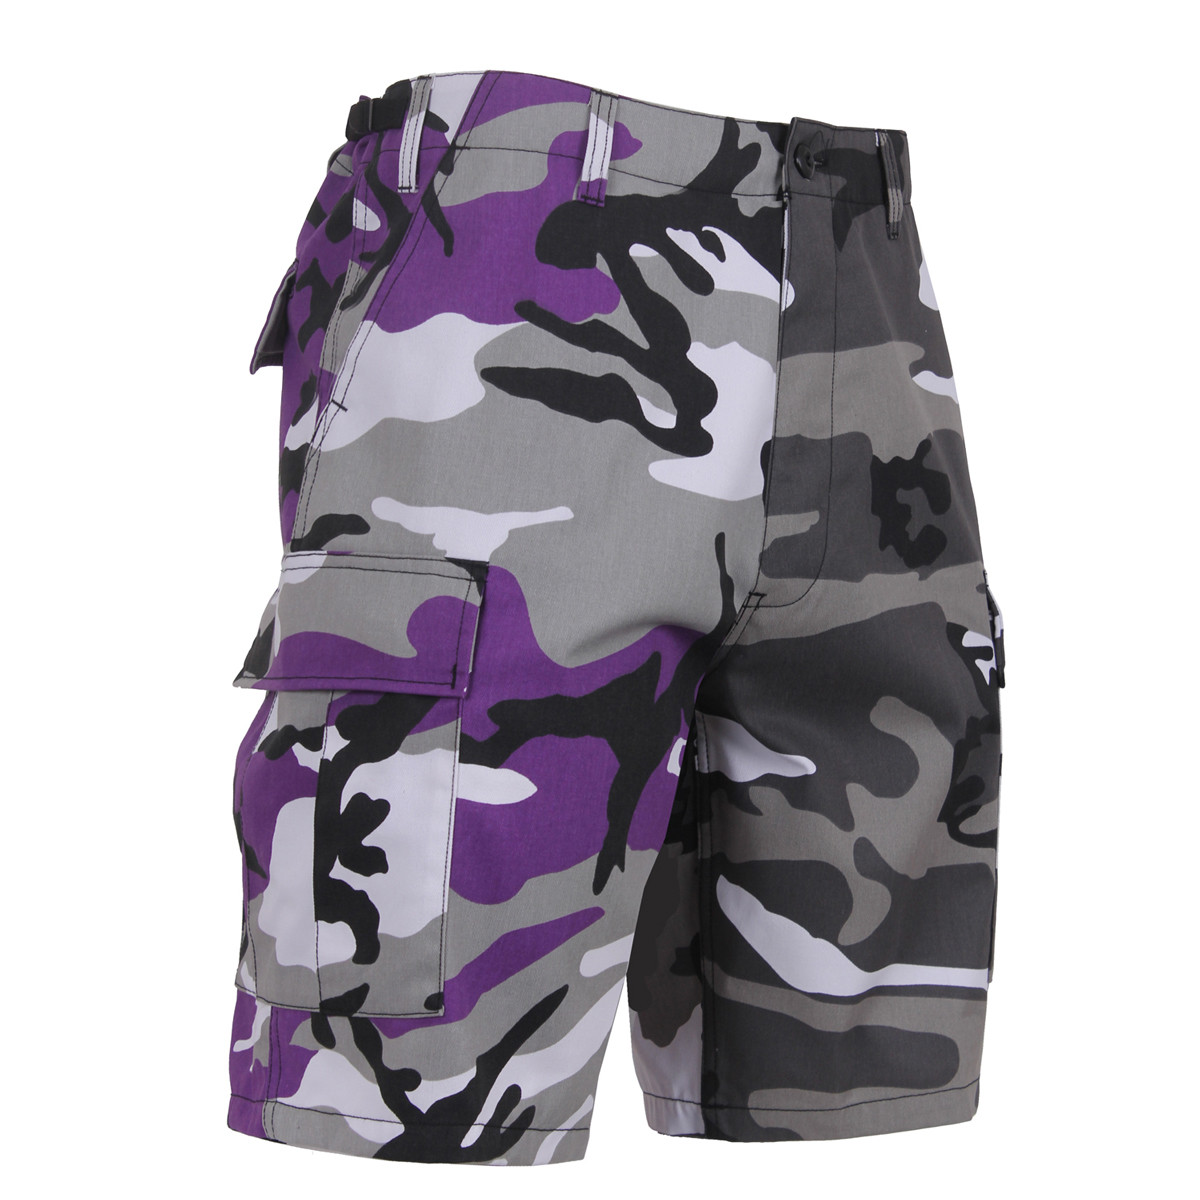 8b95ba0a140b9 Shop Two/Tone Camo BDU Shorts - Fatigues Army Navy